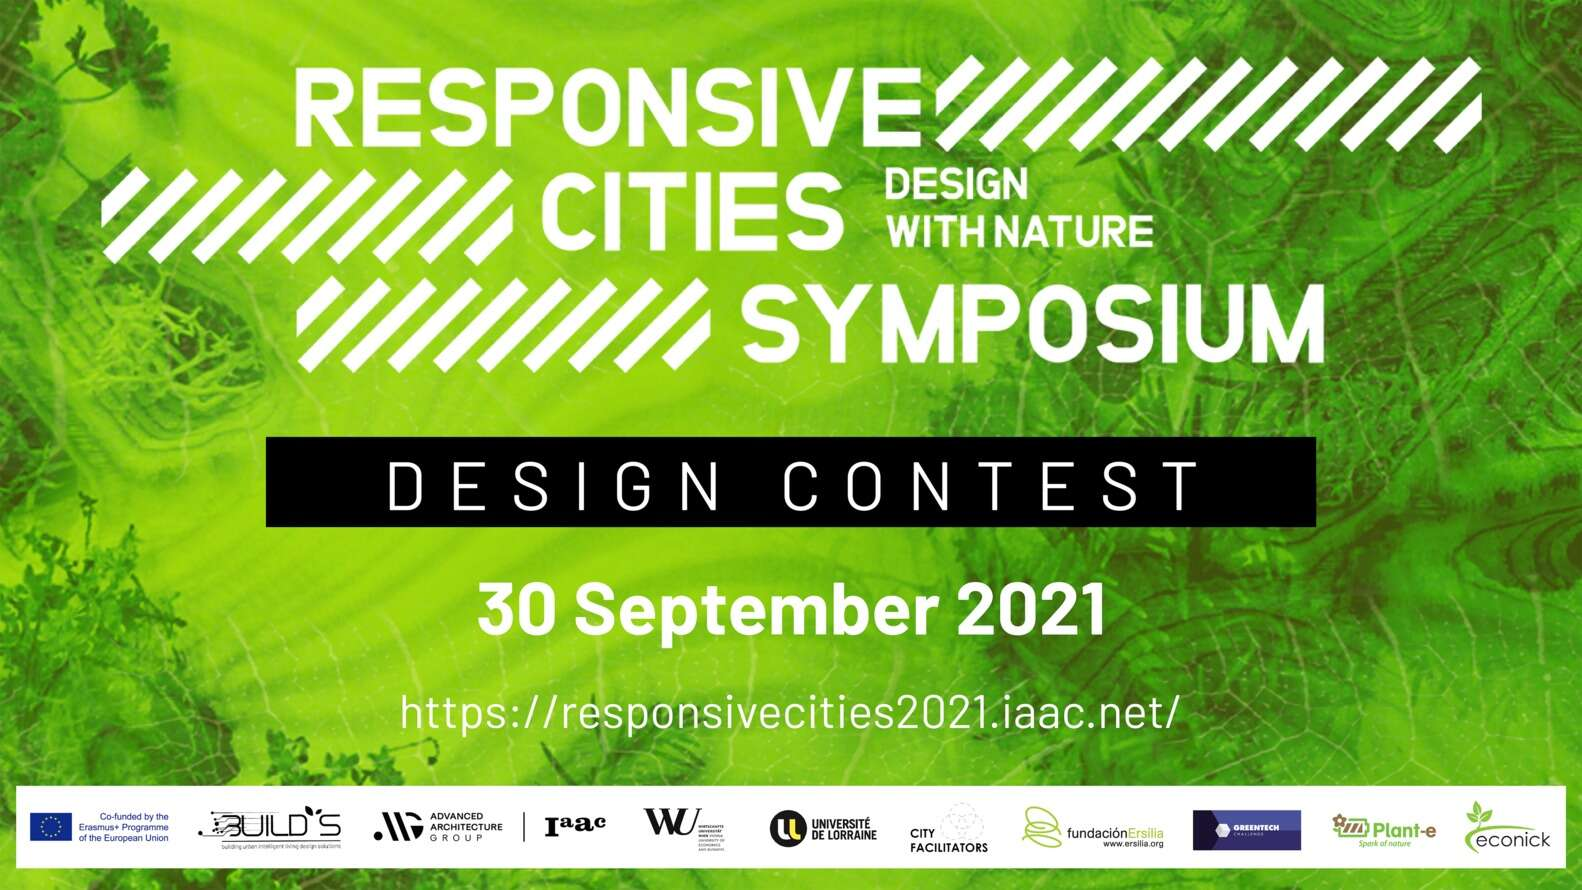 Call for Entries: Design with Nature Contest - Responsive Cities 2021